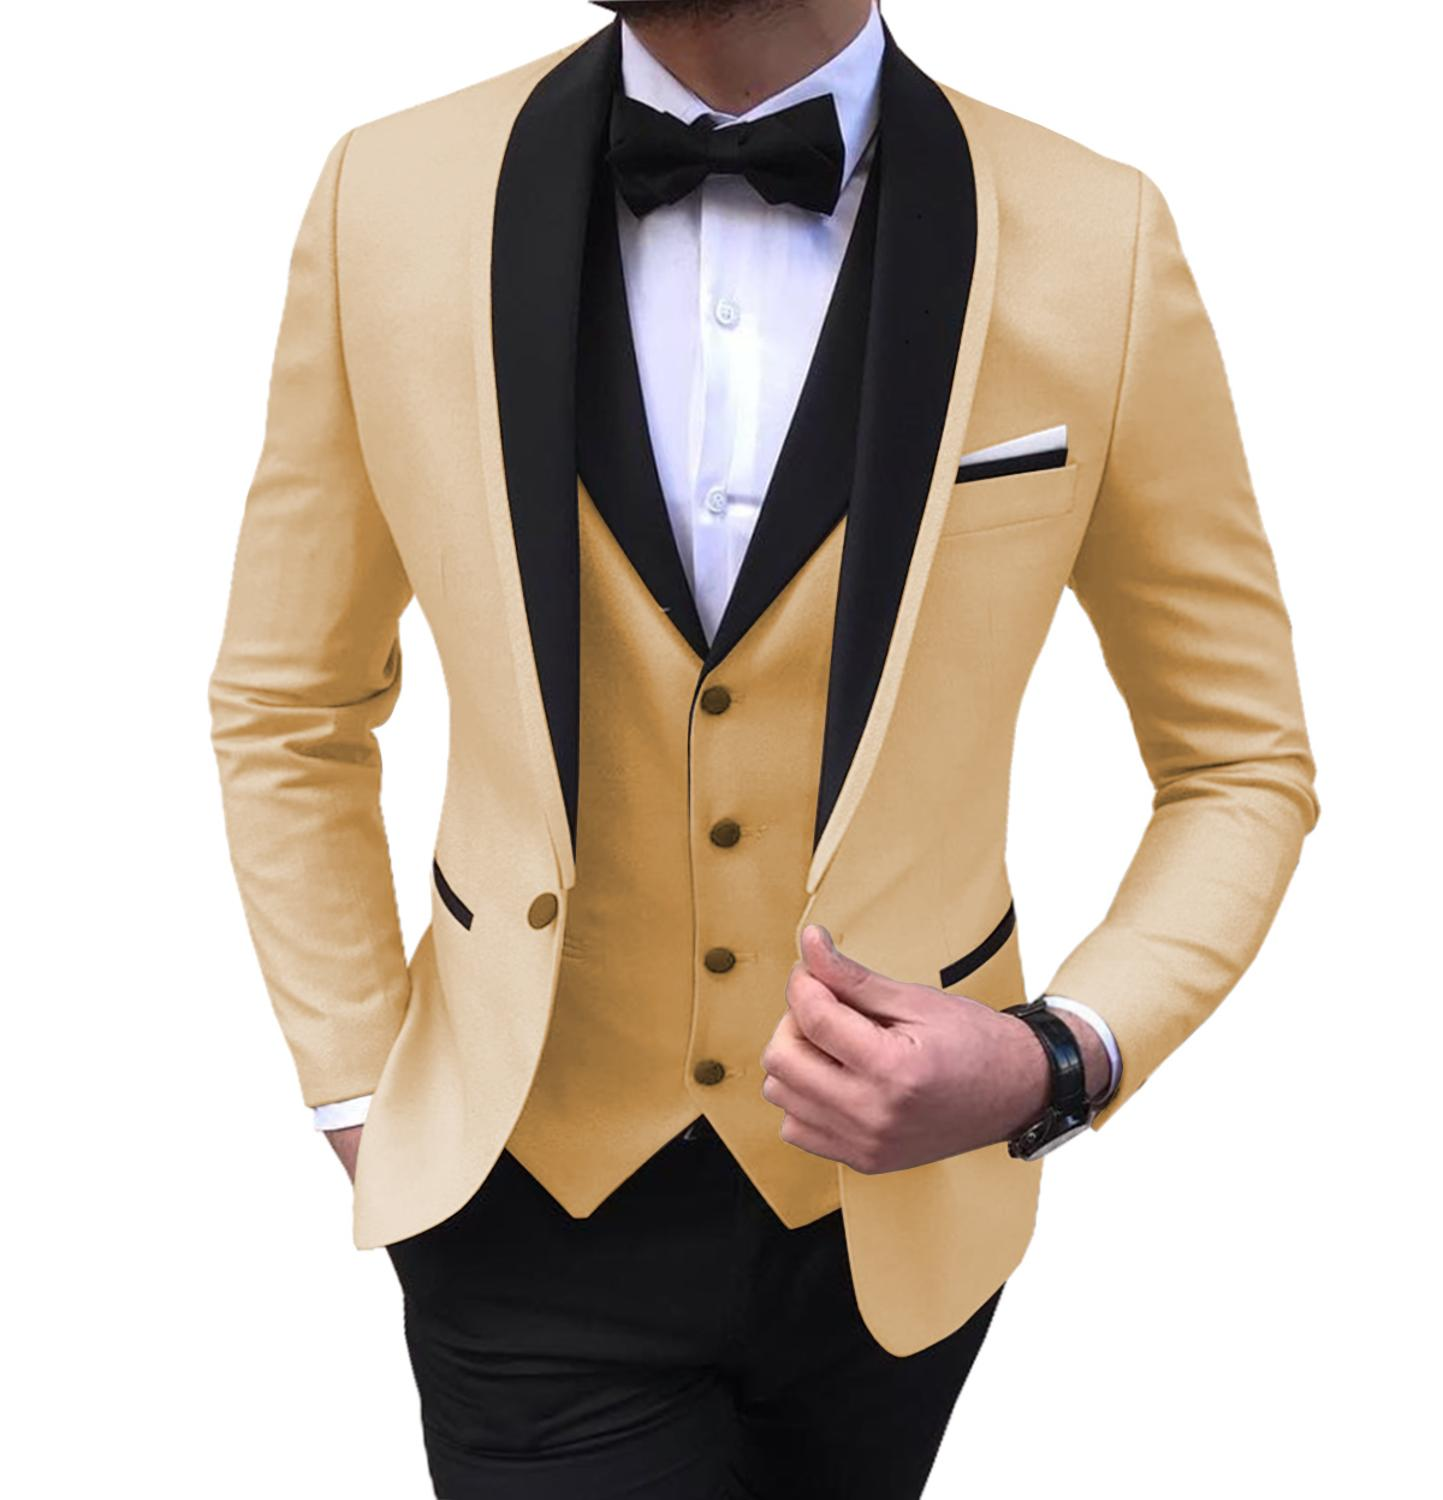 Champagne/White Mens Suits 3 Piece V Neck Shawl Lapel Casual Tuxedos For Wedding Groomsmen Suits Men 2019(Blazer+Vest+Pant)